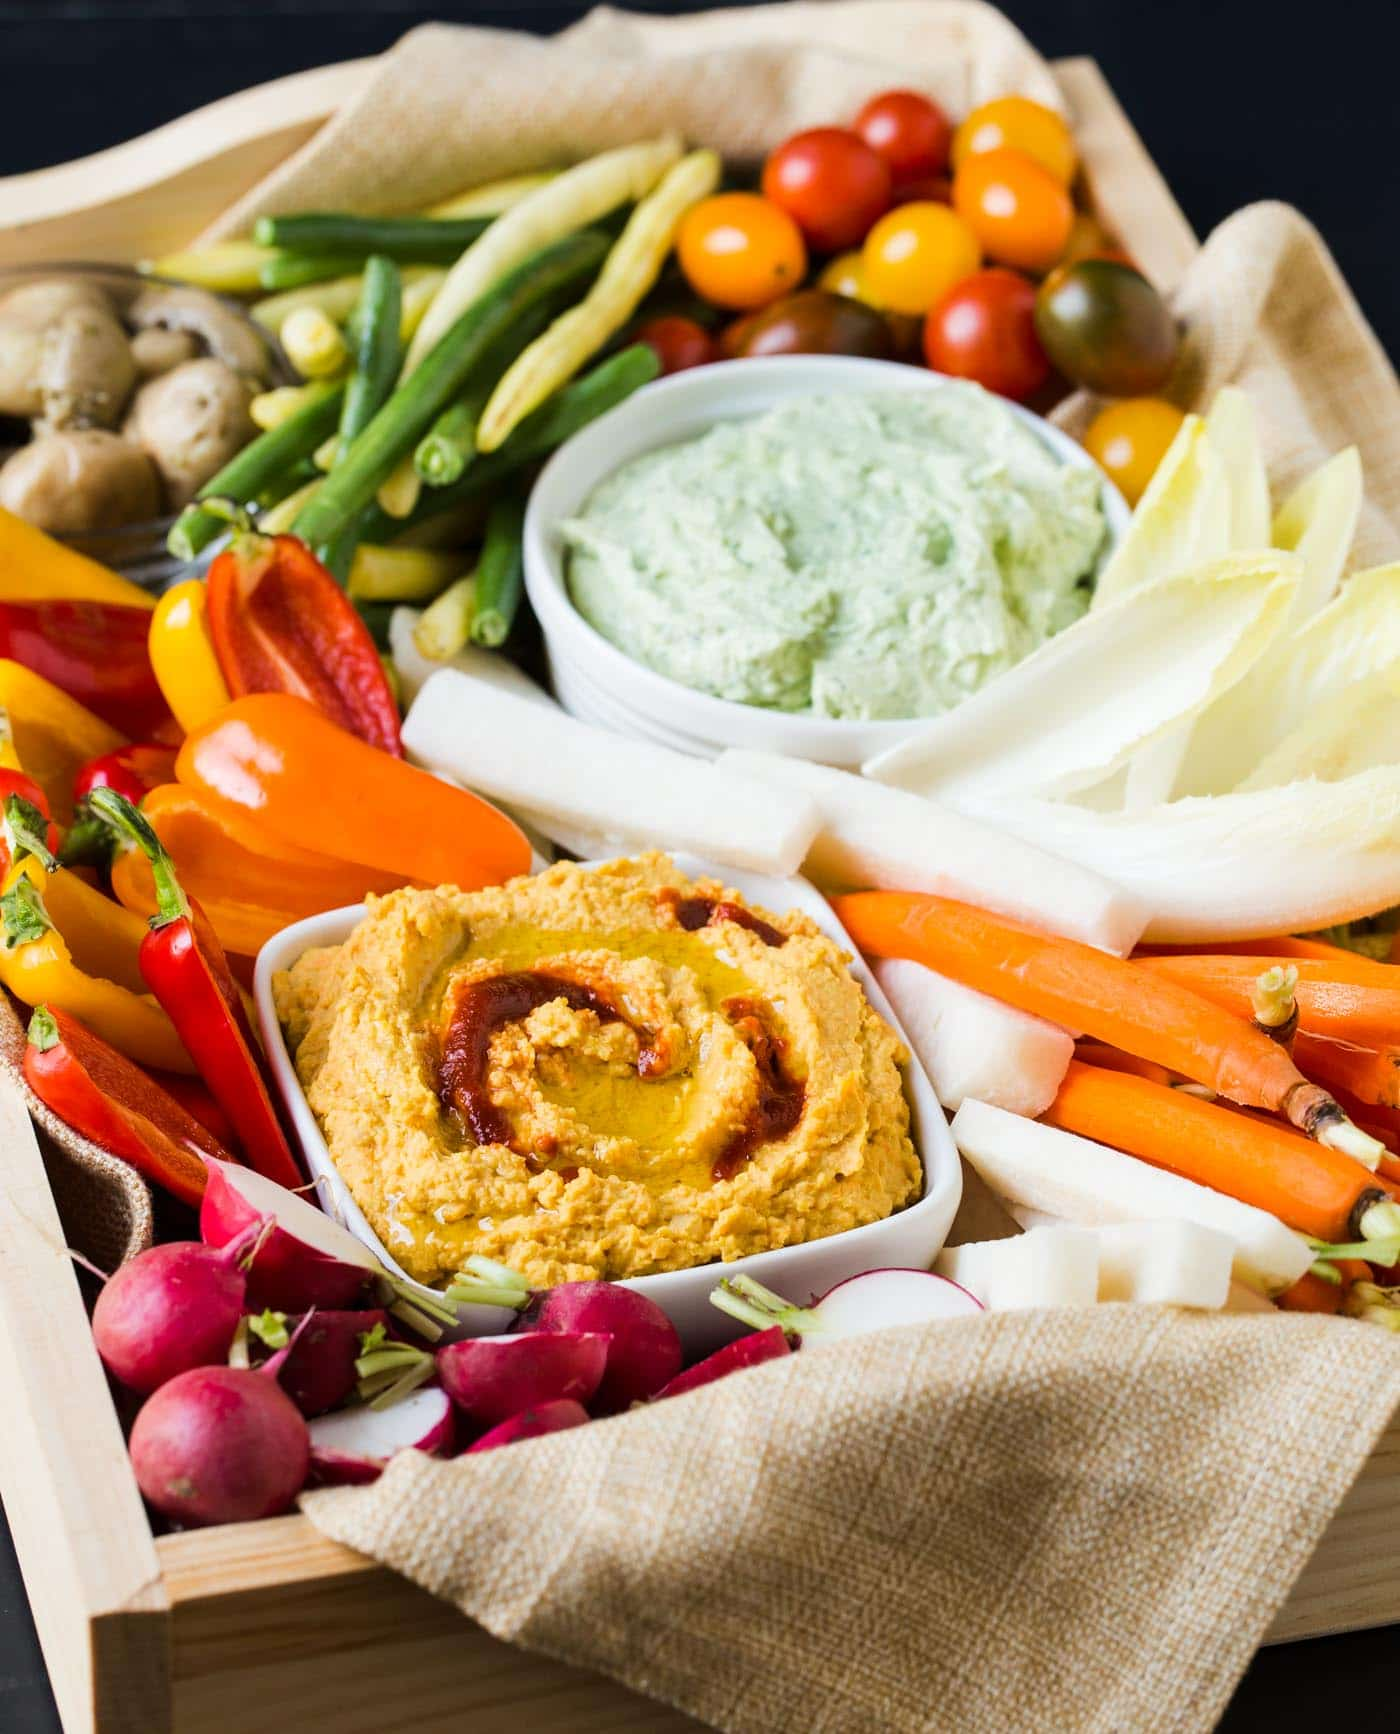 Say no to the sad store-bought veggie tray! Follow our simple suggestions for How to Build a Better Veggie Tray that your guests will love.